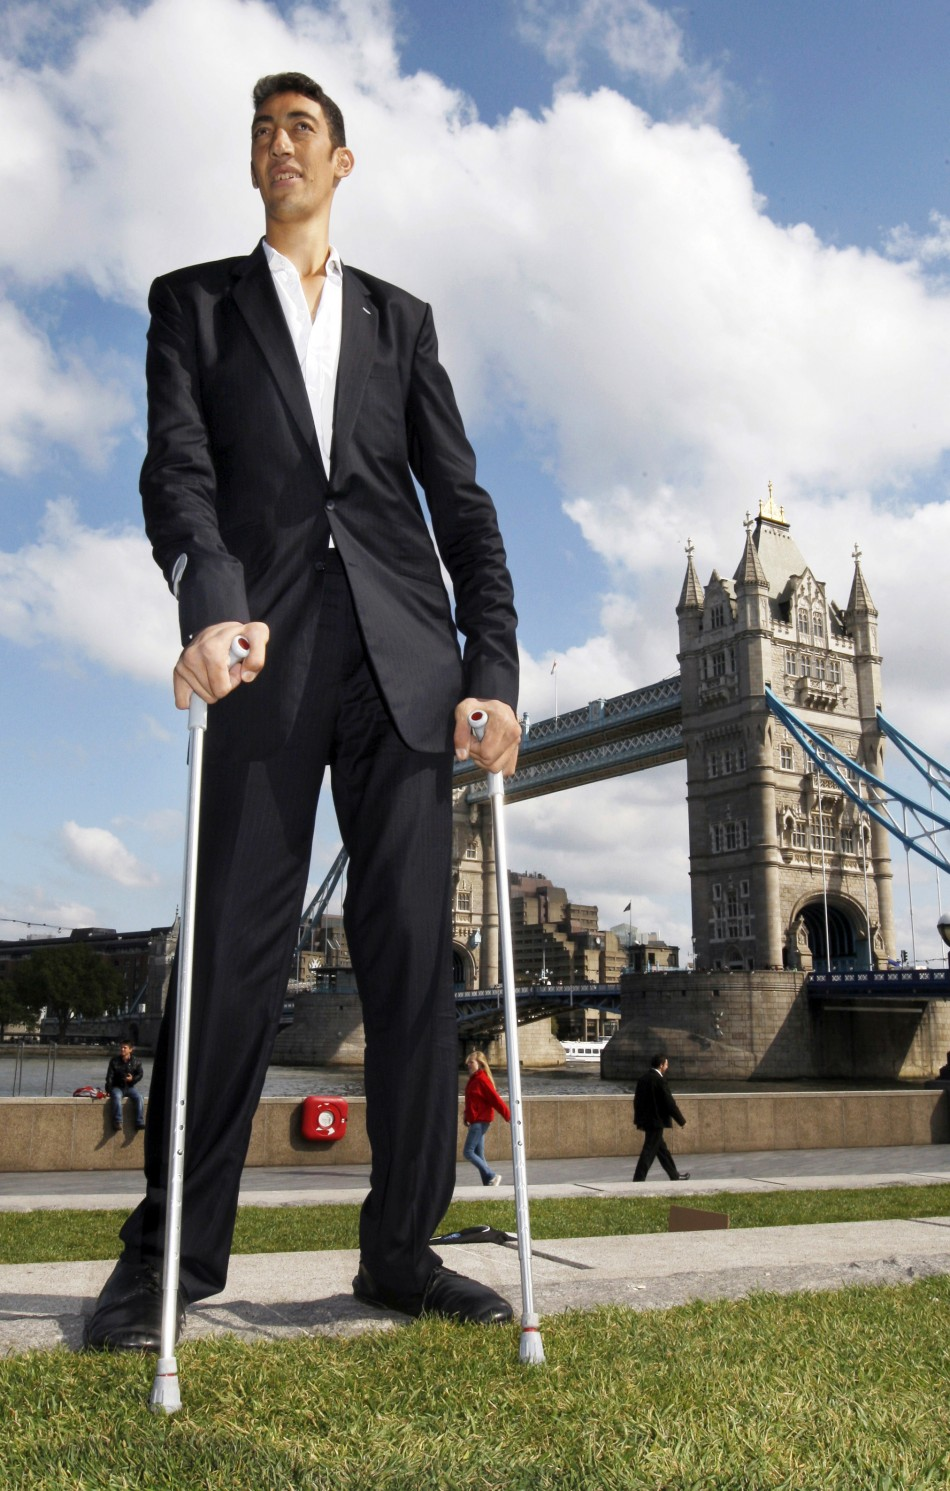 The World Of Playing Cards: Herzegovinian Men Are The Tallest In The World